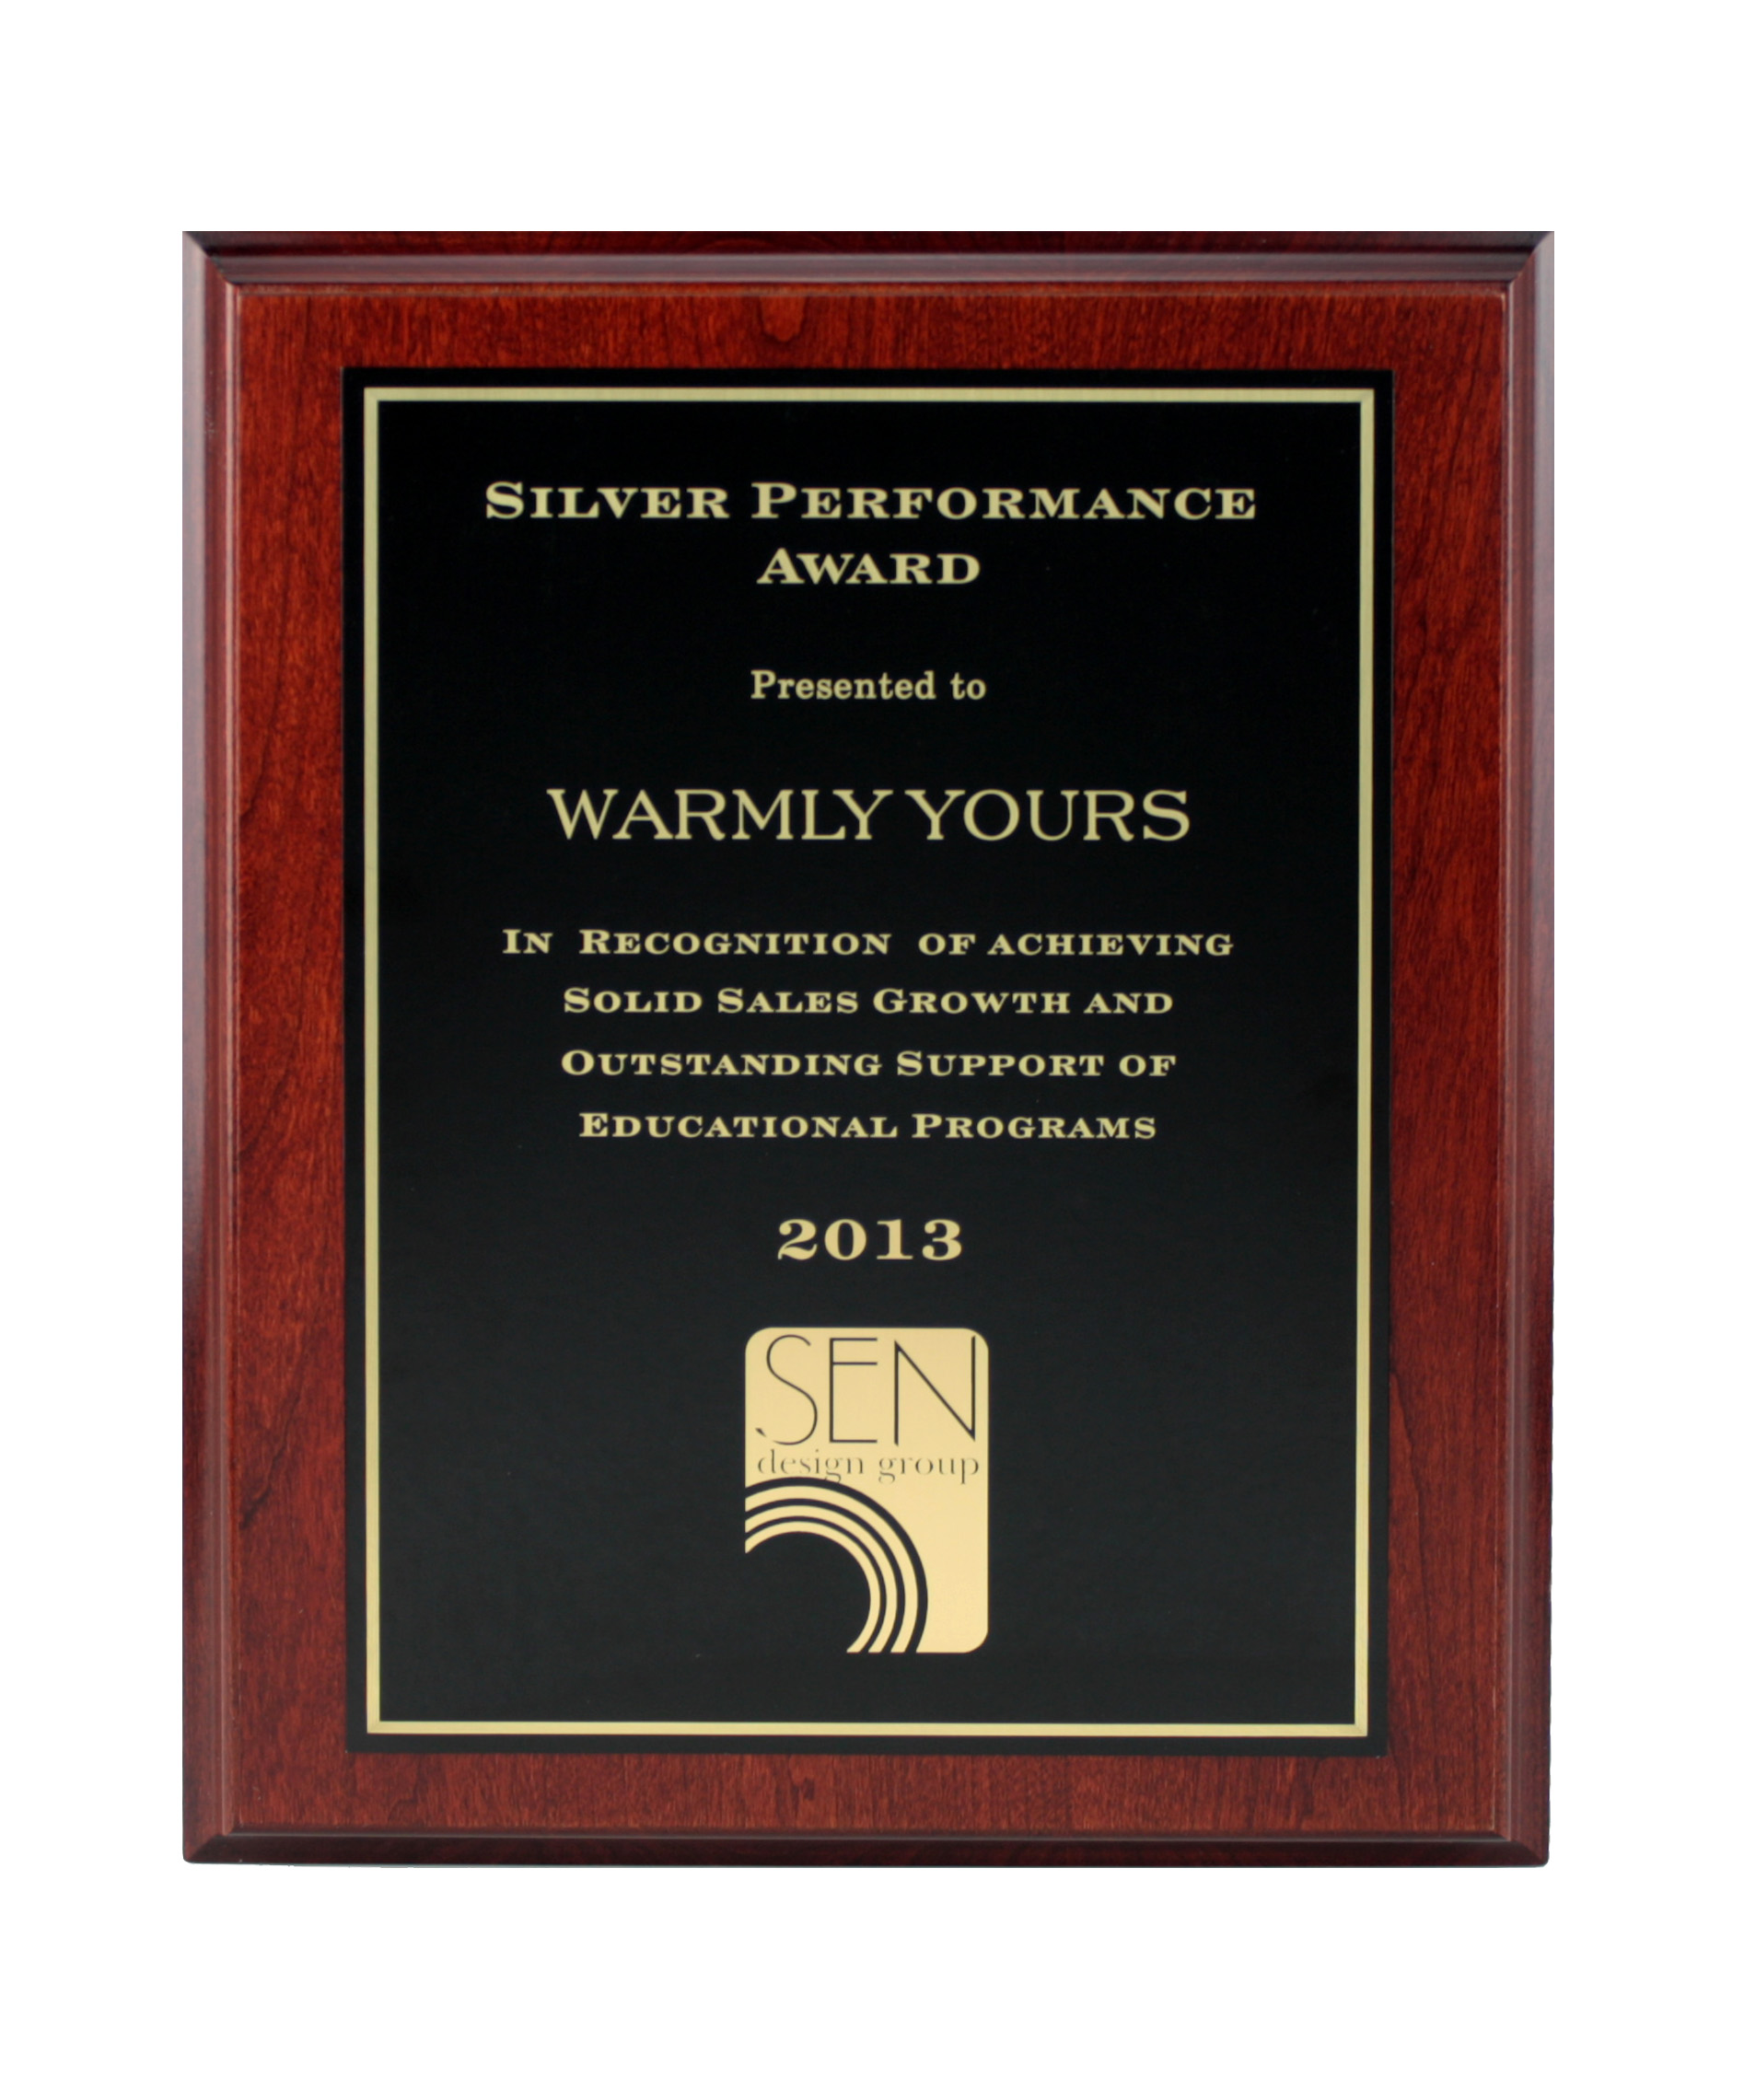 WarmlyYours 2013 SEN Award